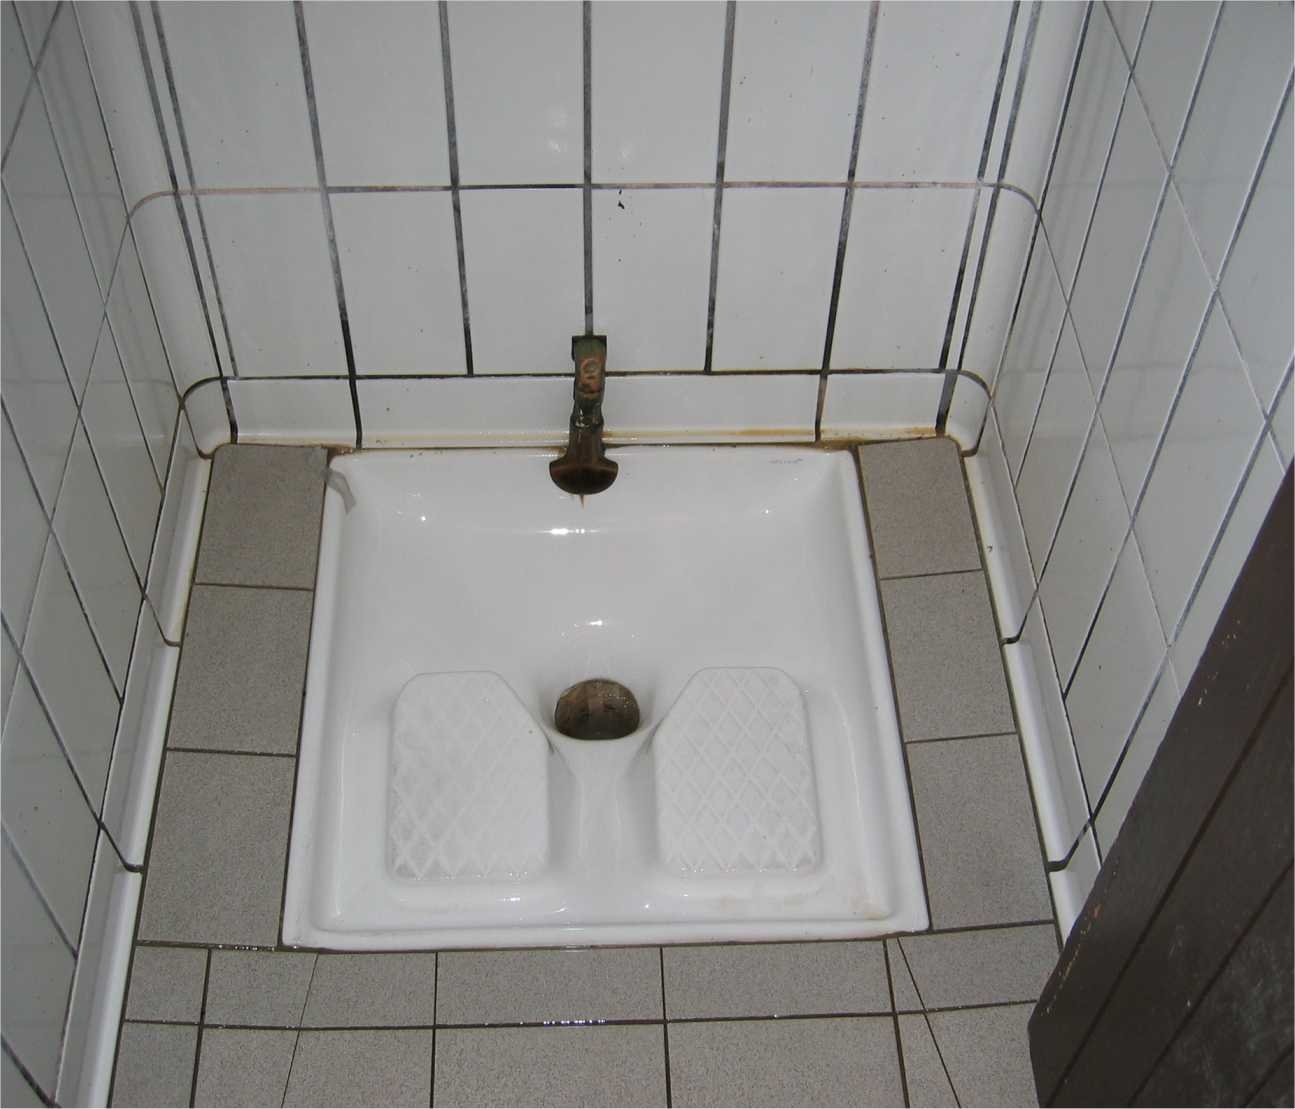 Image of a Turkish Toilet (Wikipedia)